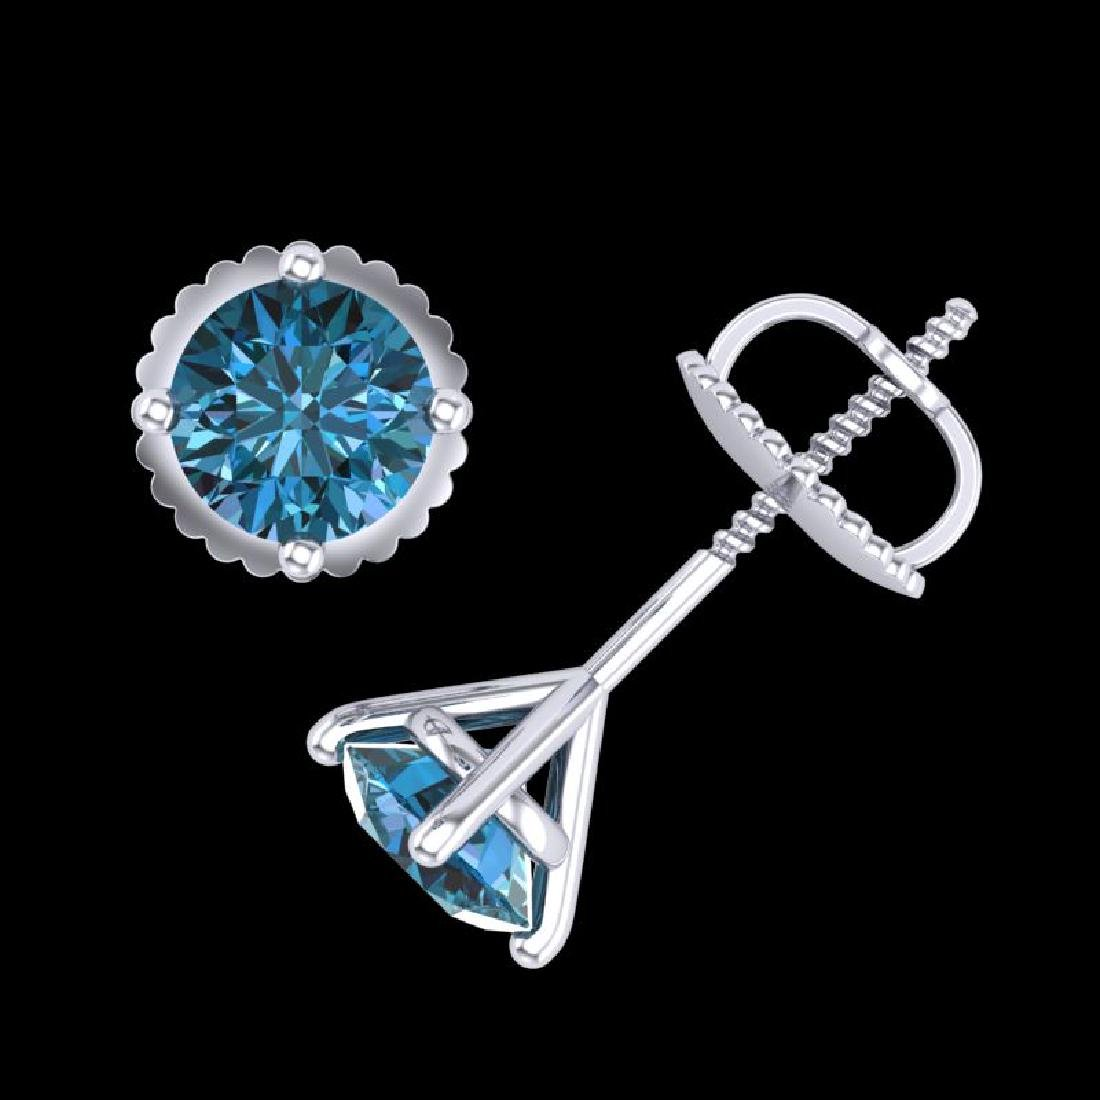 1.01 CTW Fancy Intense Blue Diamond Art Deco Stud - 3